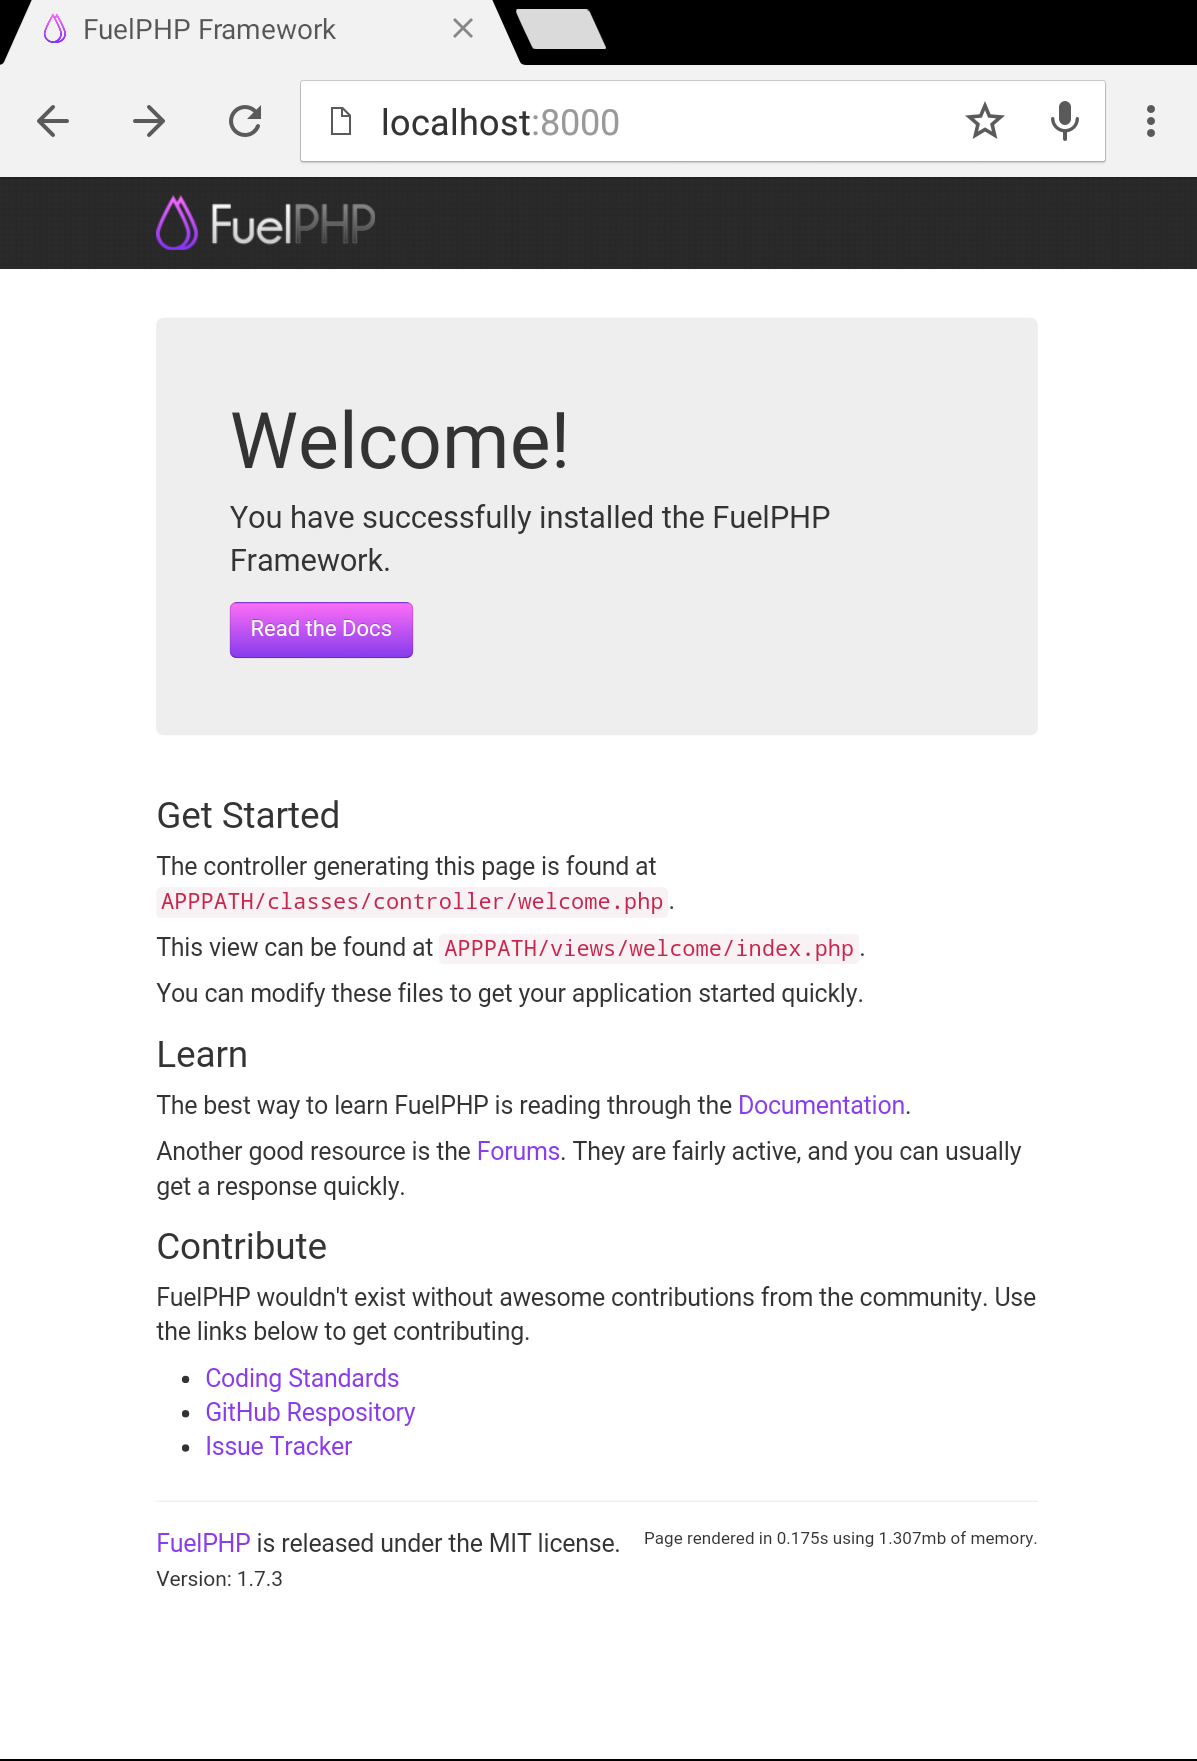 fuelphp_20150613010.png